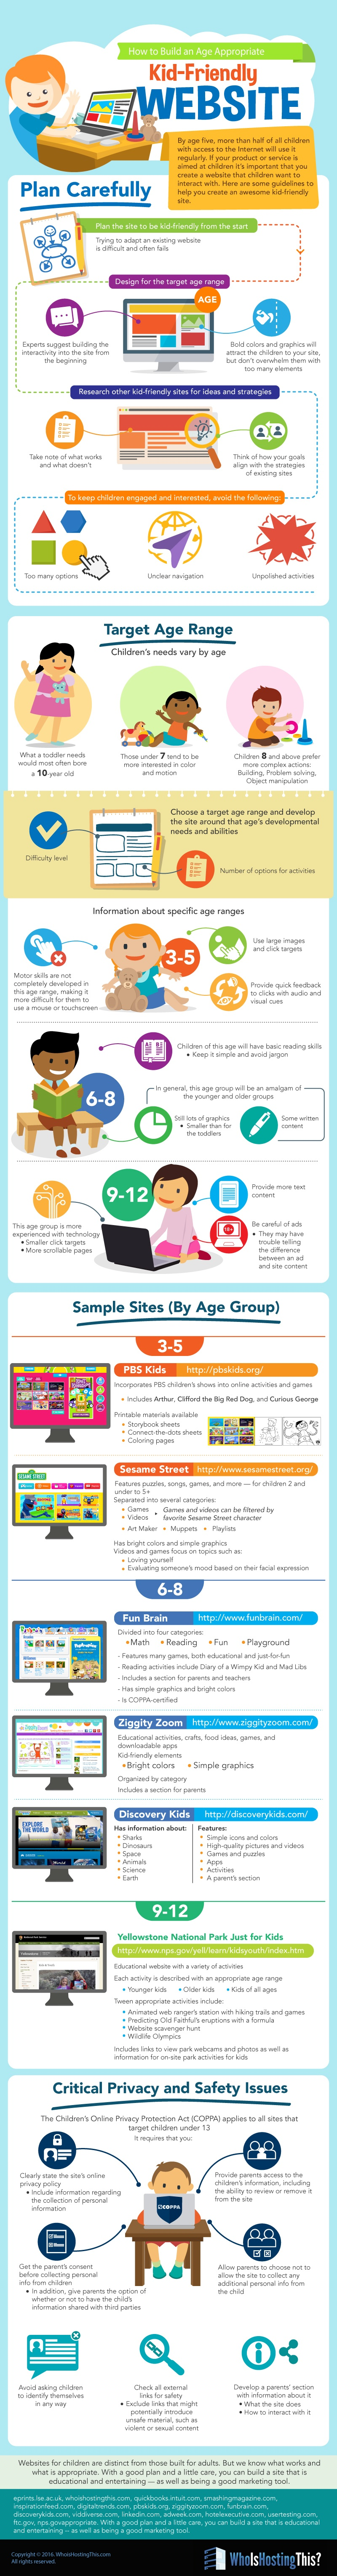 How to Build an Age Appropriate Kid-Friendly Website Infographic